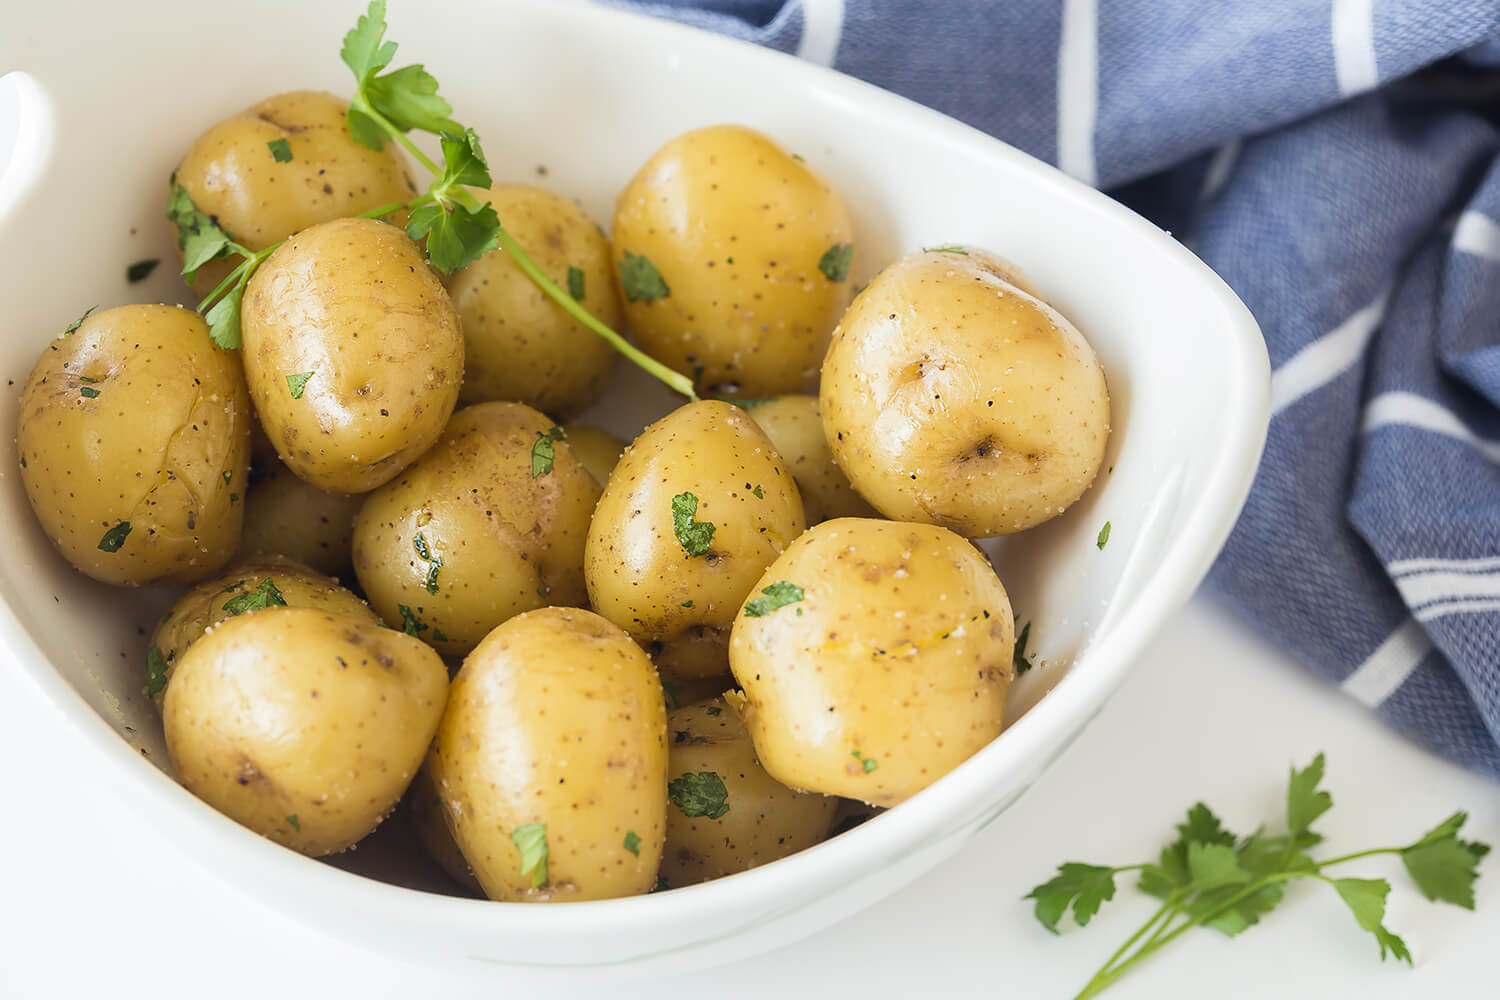 Boiled Potatoes Recipe The Little Potato Company